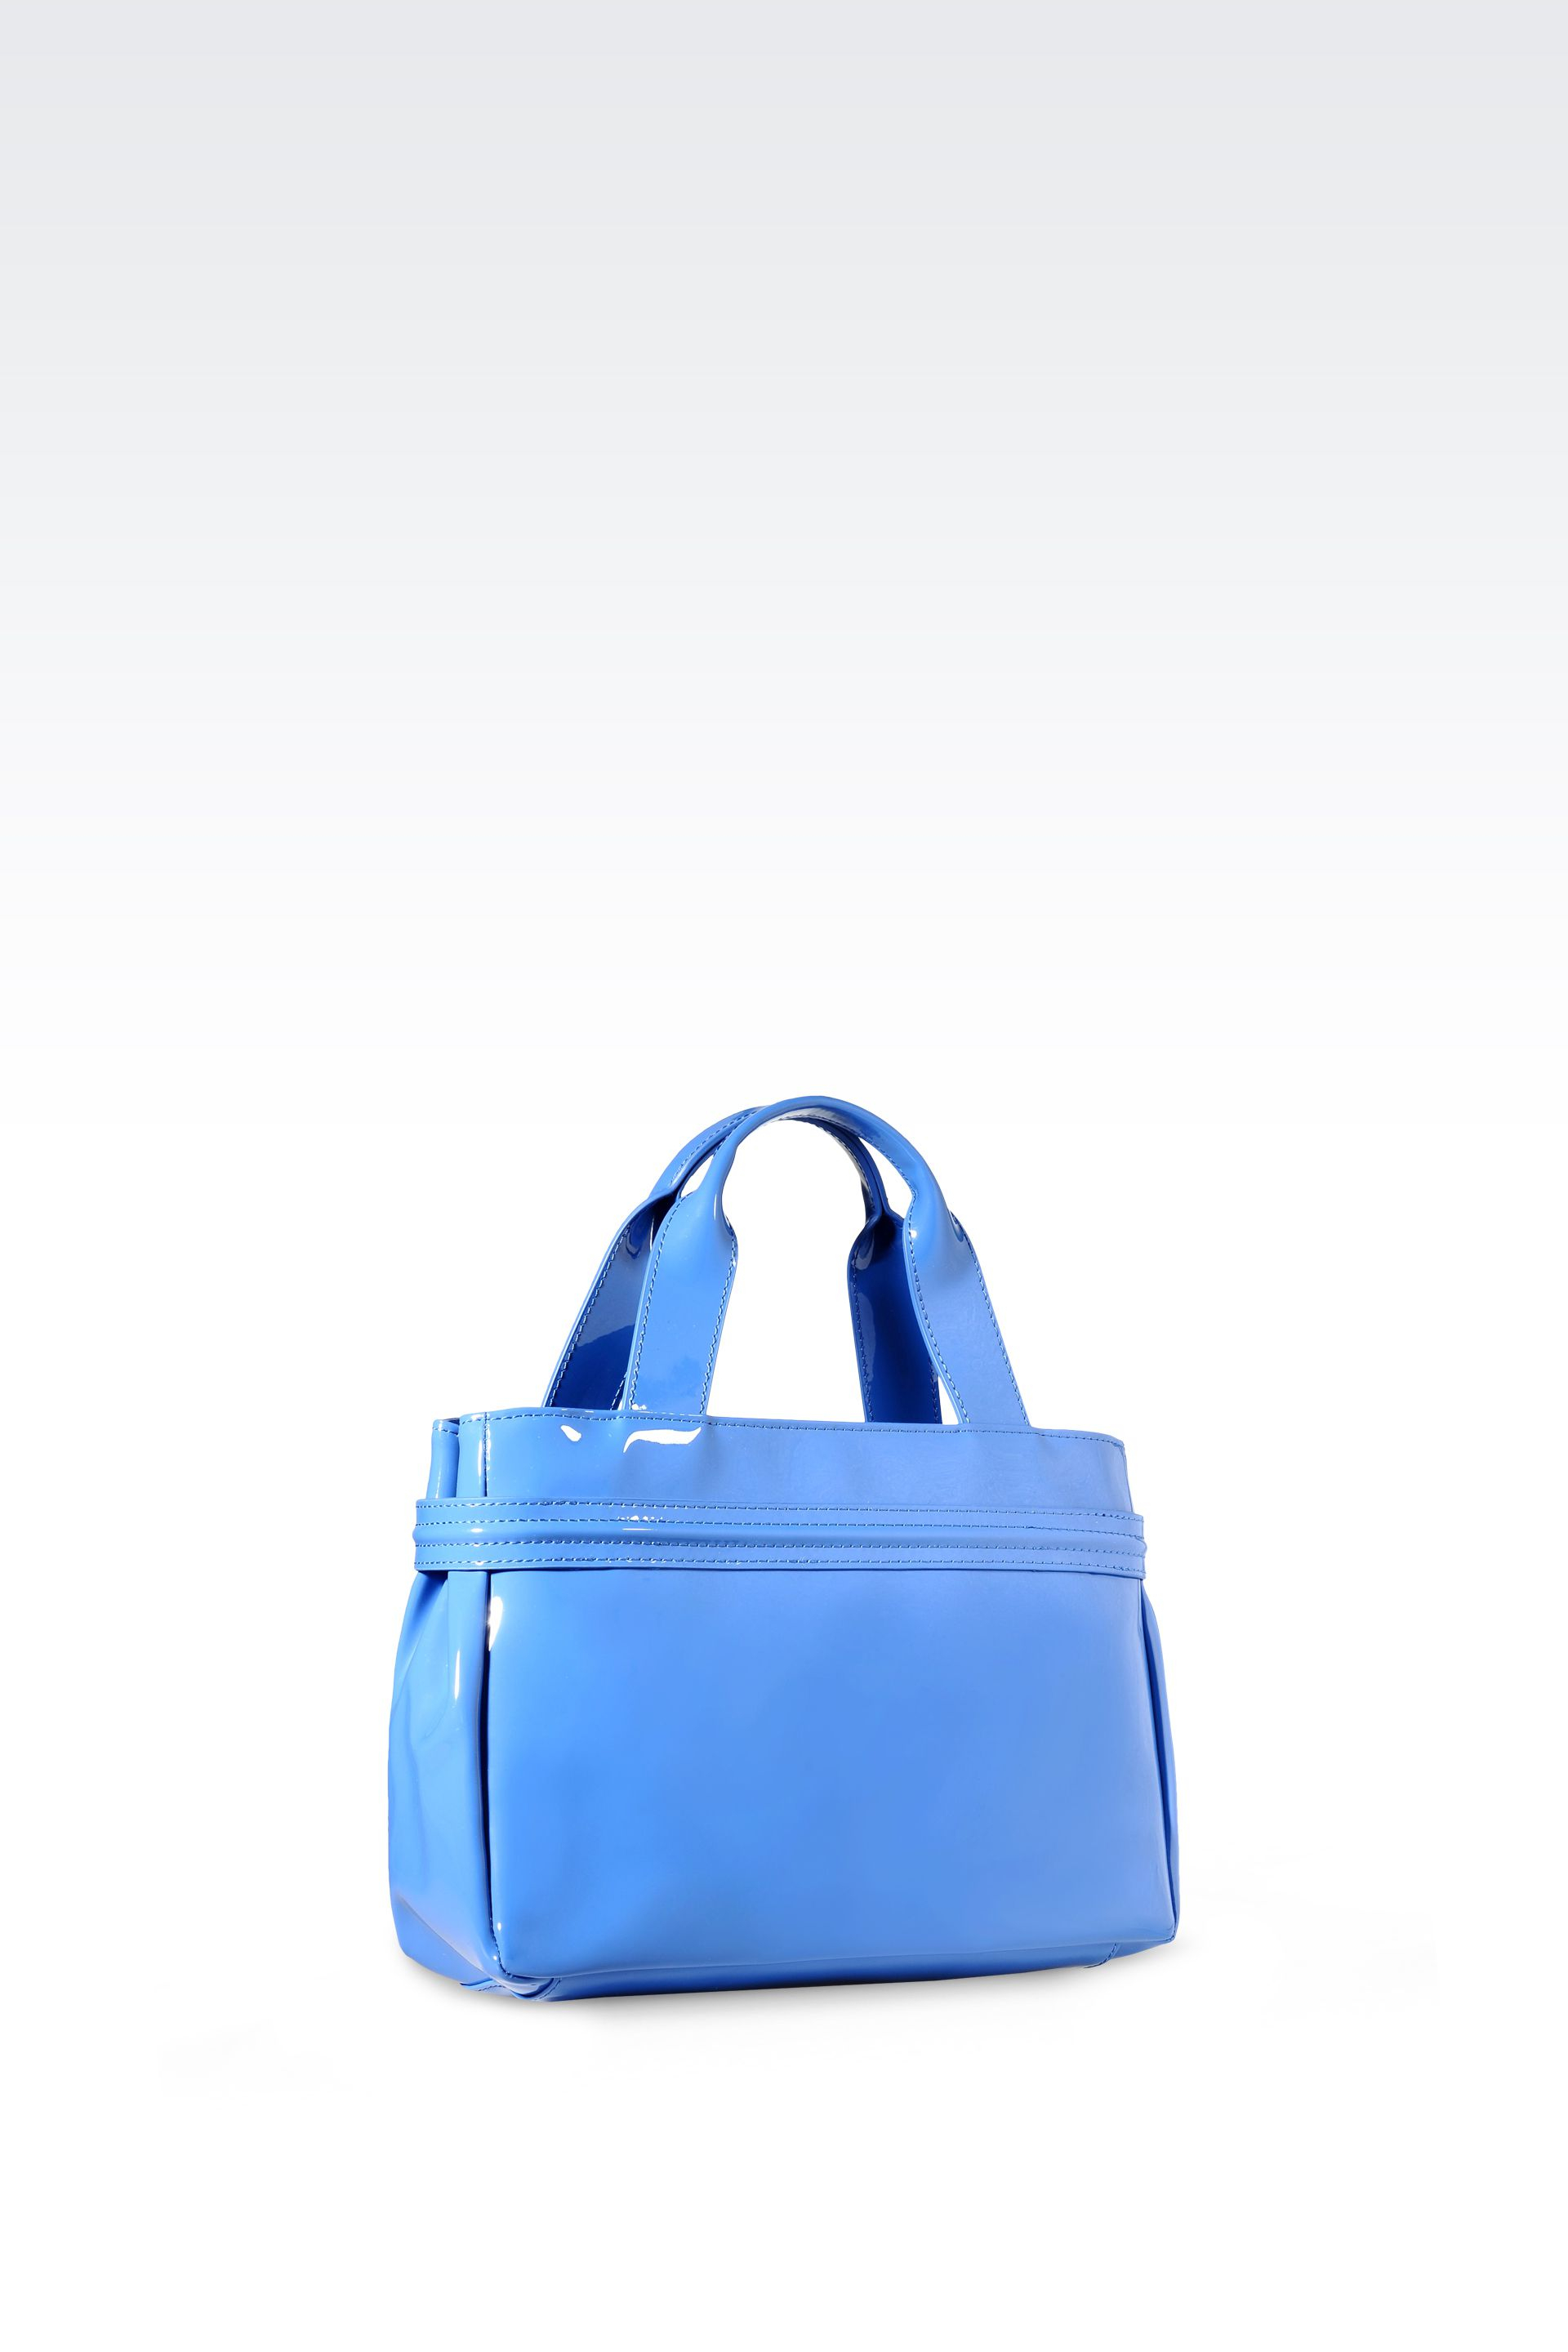 a619c9476097 Lyst - Armani Jeans Mini Shopping Bag In Patent Faux Leather With ...